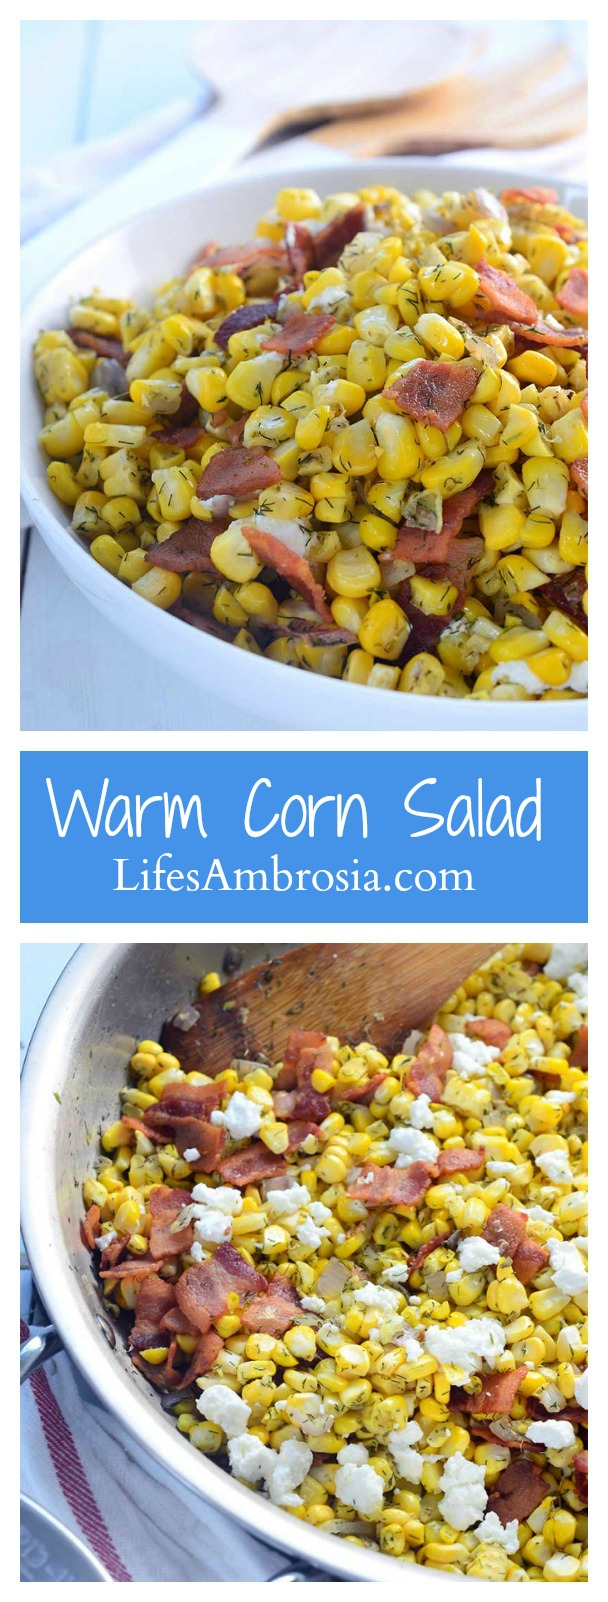 This 5 ingredient warm corn salad is loaded with sweet corn, dill, bacon, shallots and goat cheese. It's the perfect way to showcase summer corn.